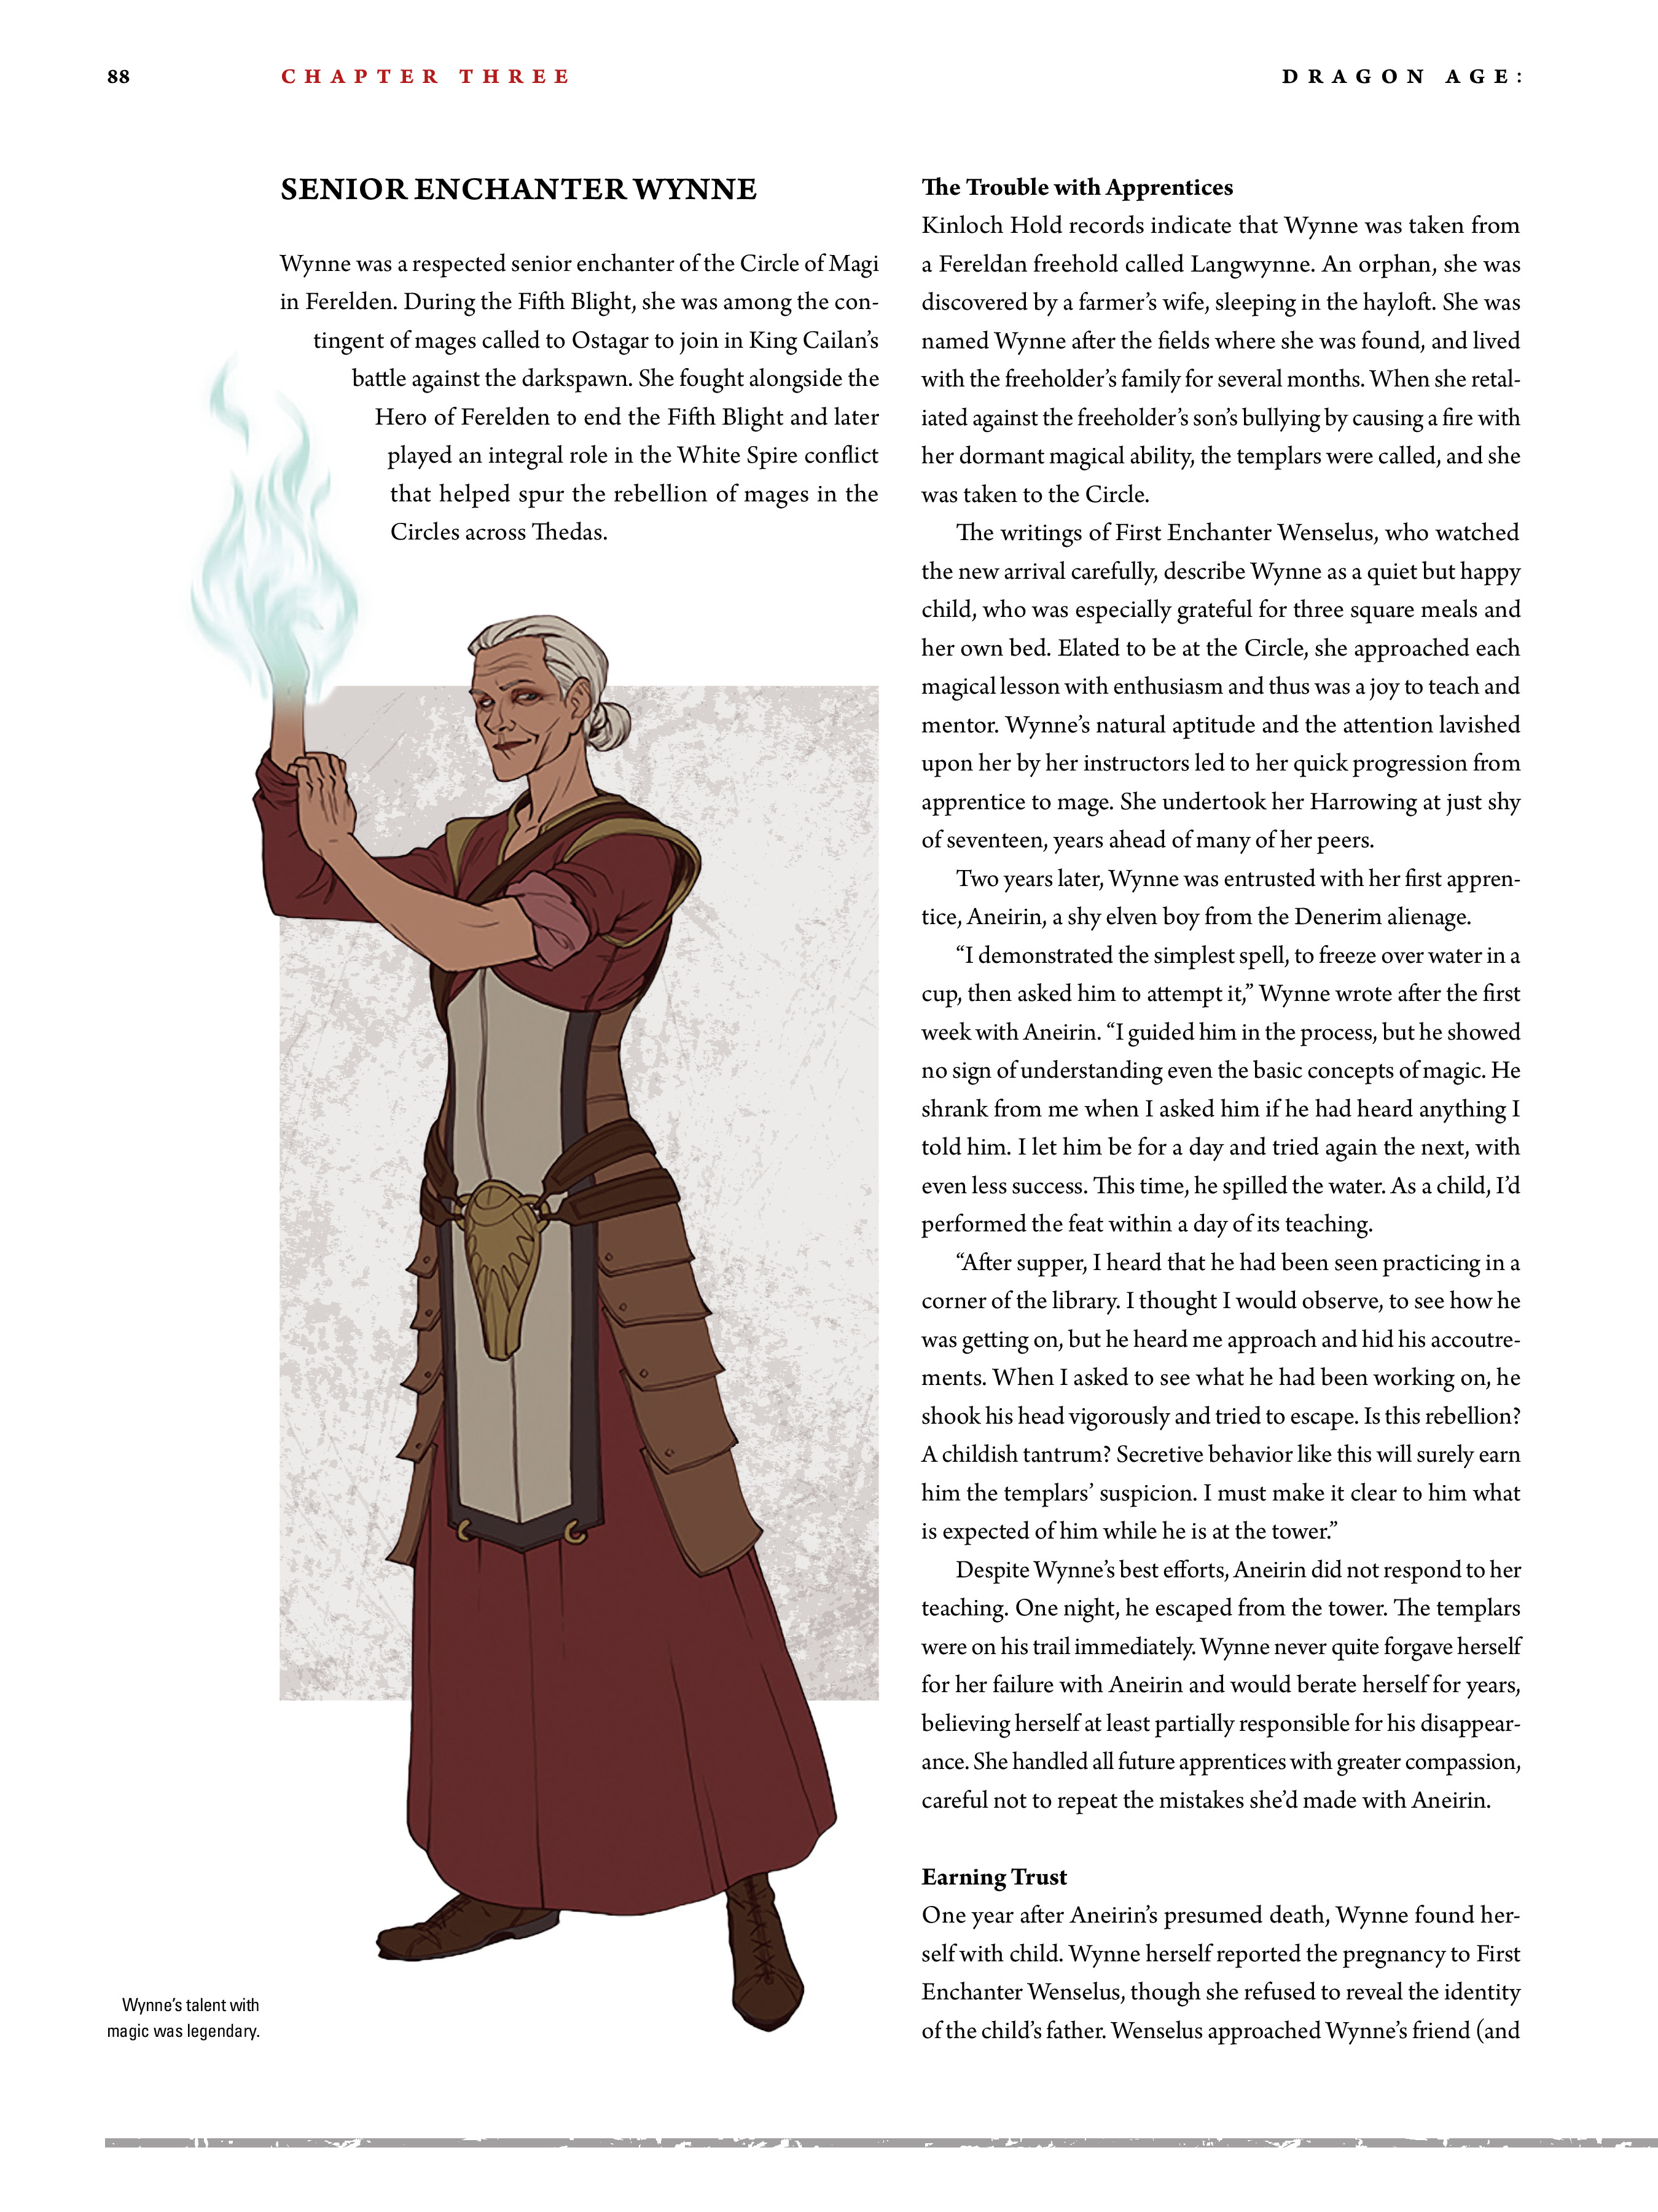 Read online Dragon Age: The World of Thedas comic -  Issue # TPB 2 - 84